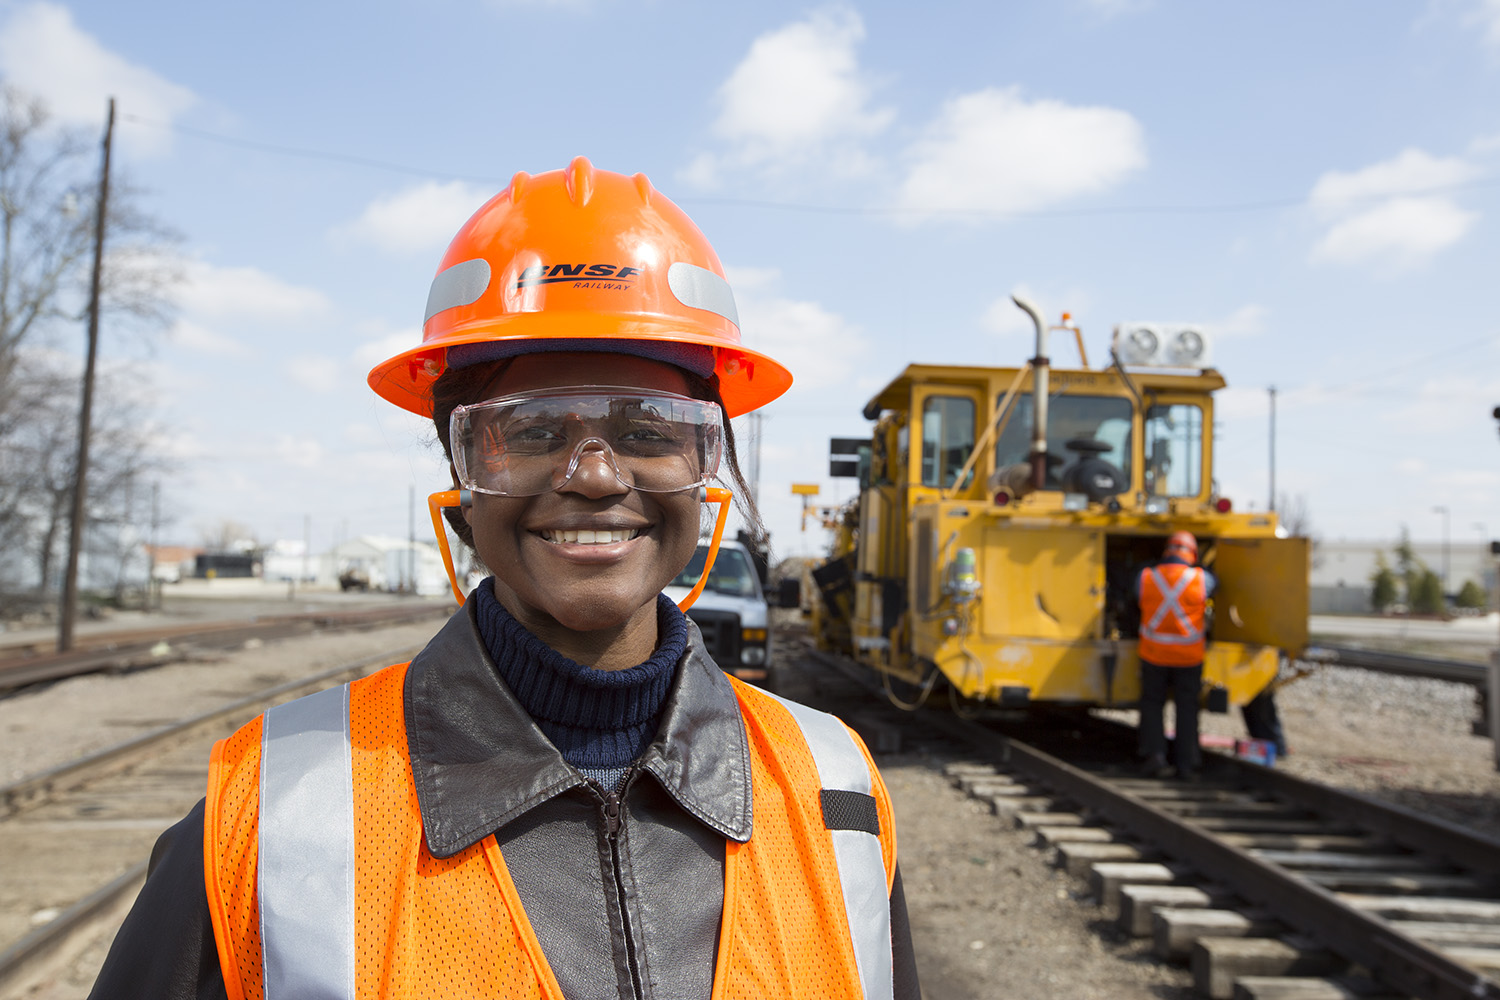 Careers - Association of American Railroads